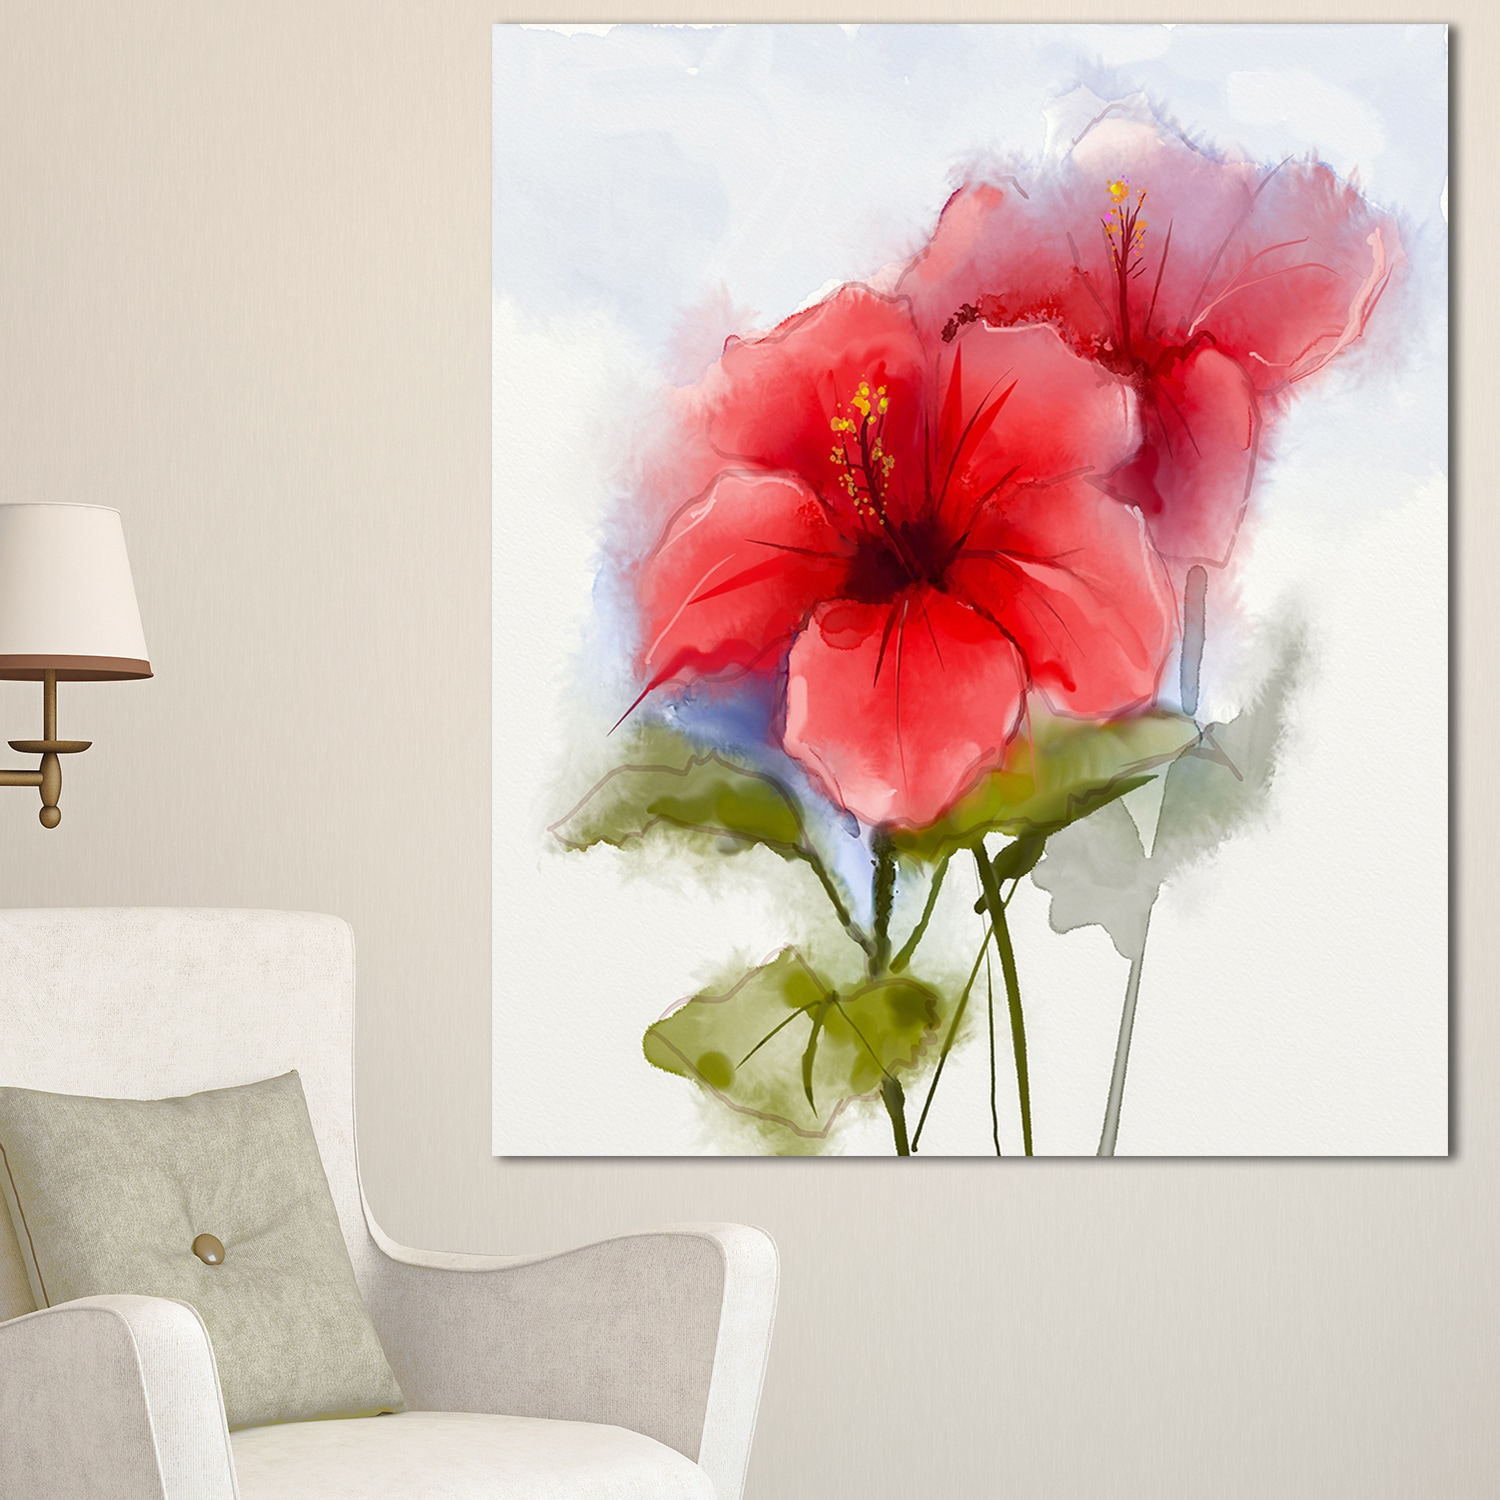 Designart watercolor painting red hibiscus flower modern floral designart watercolor painting red hibiscus flower modern floral wall art canvas free shipping on orders over 45 overstock 19900490 izmirmasajfo